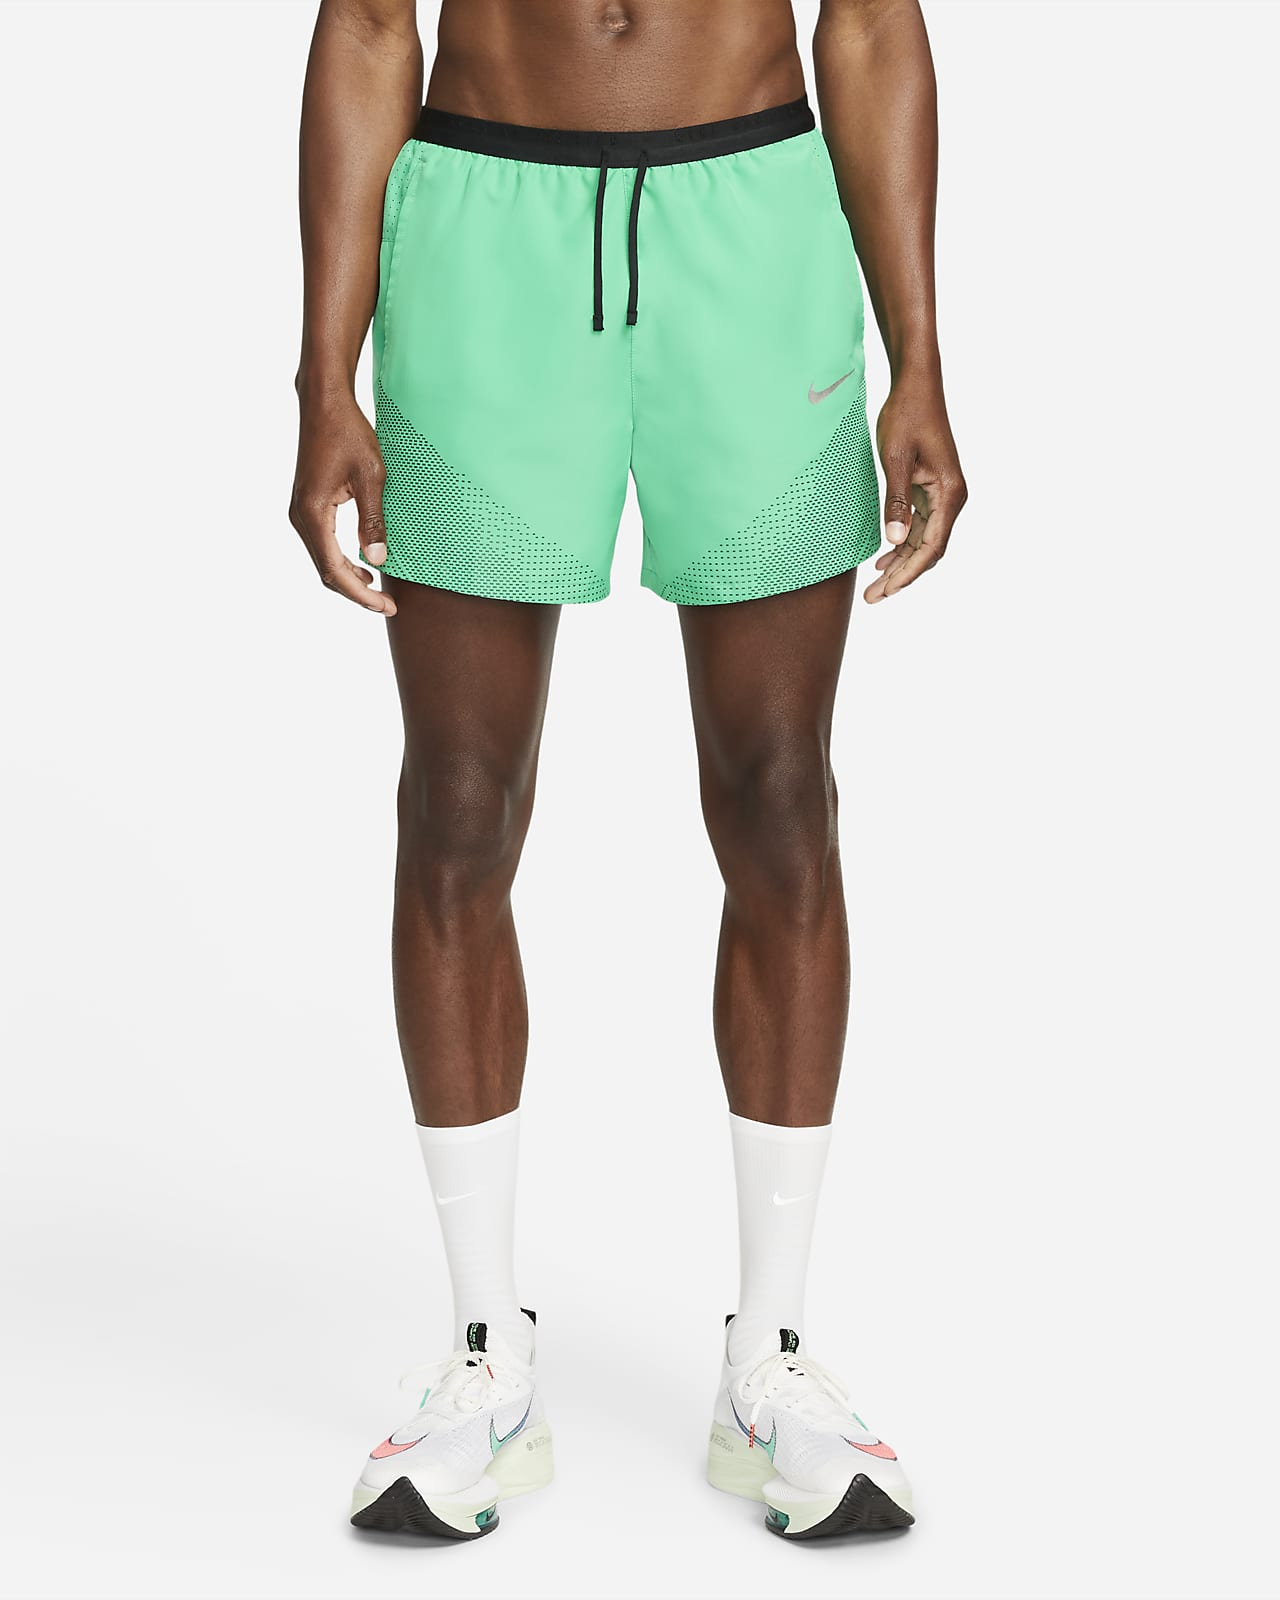 Nike Dri-FIT Run Division Flex Stride Men's 13cm (approx.) Brief-Lined Running Shorts